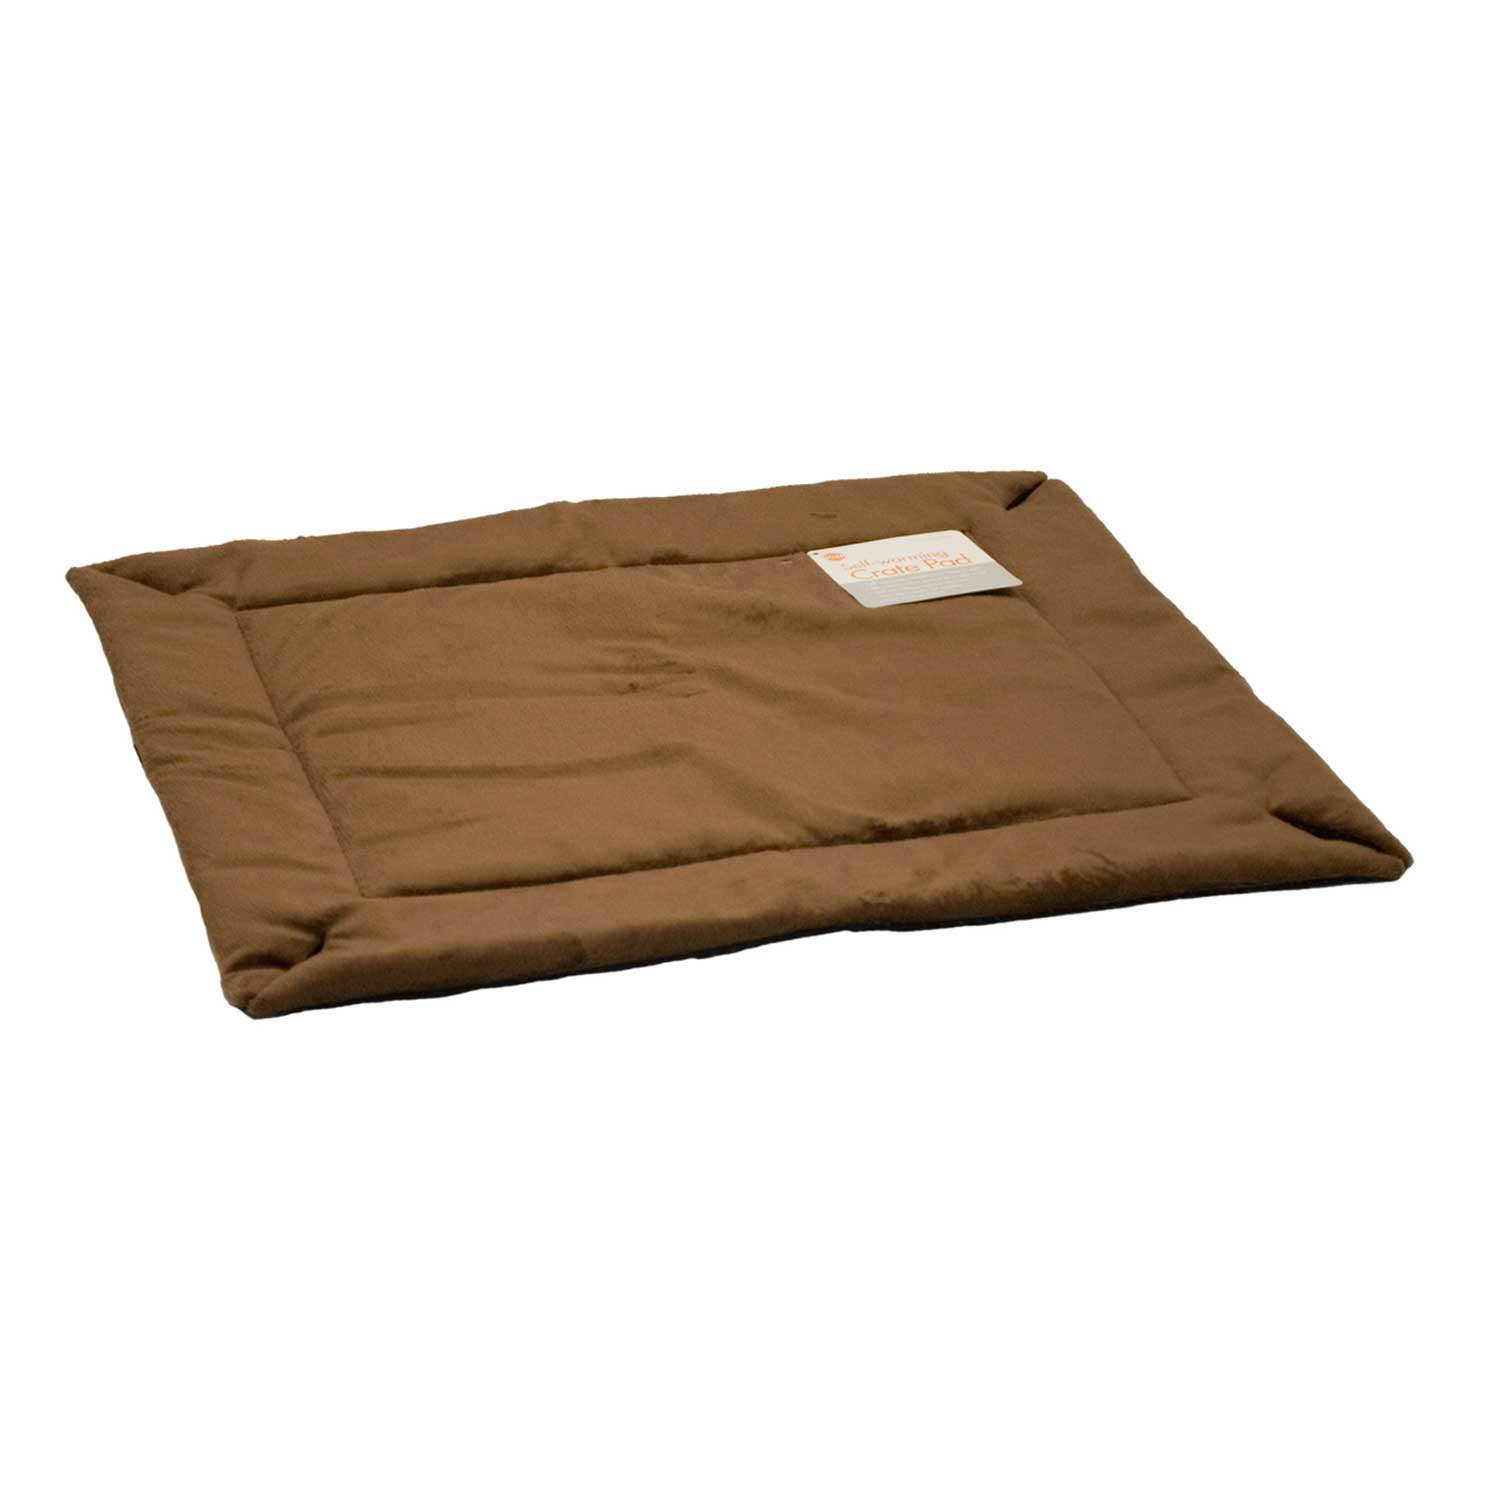 KH Mocha Self Warming Crate Pad 37 L X 25 W X 1 H Large Brown